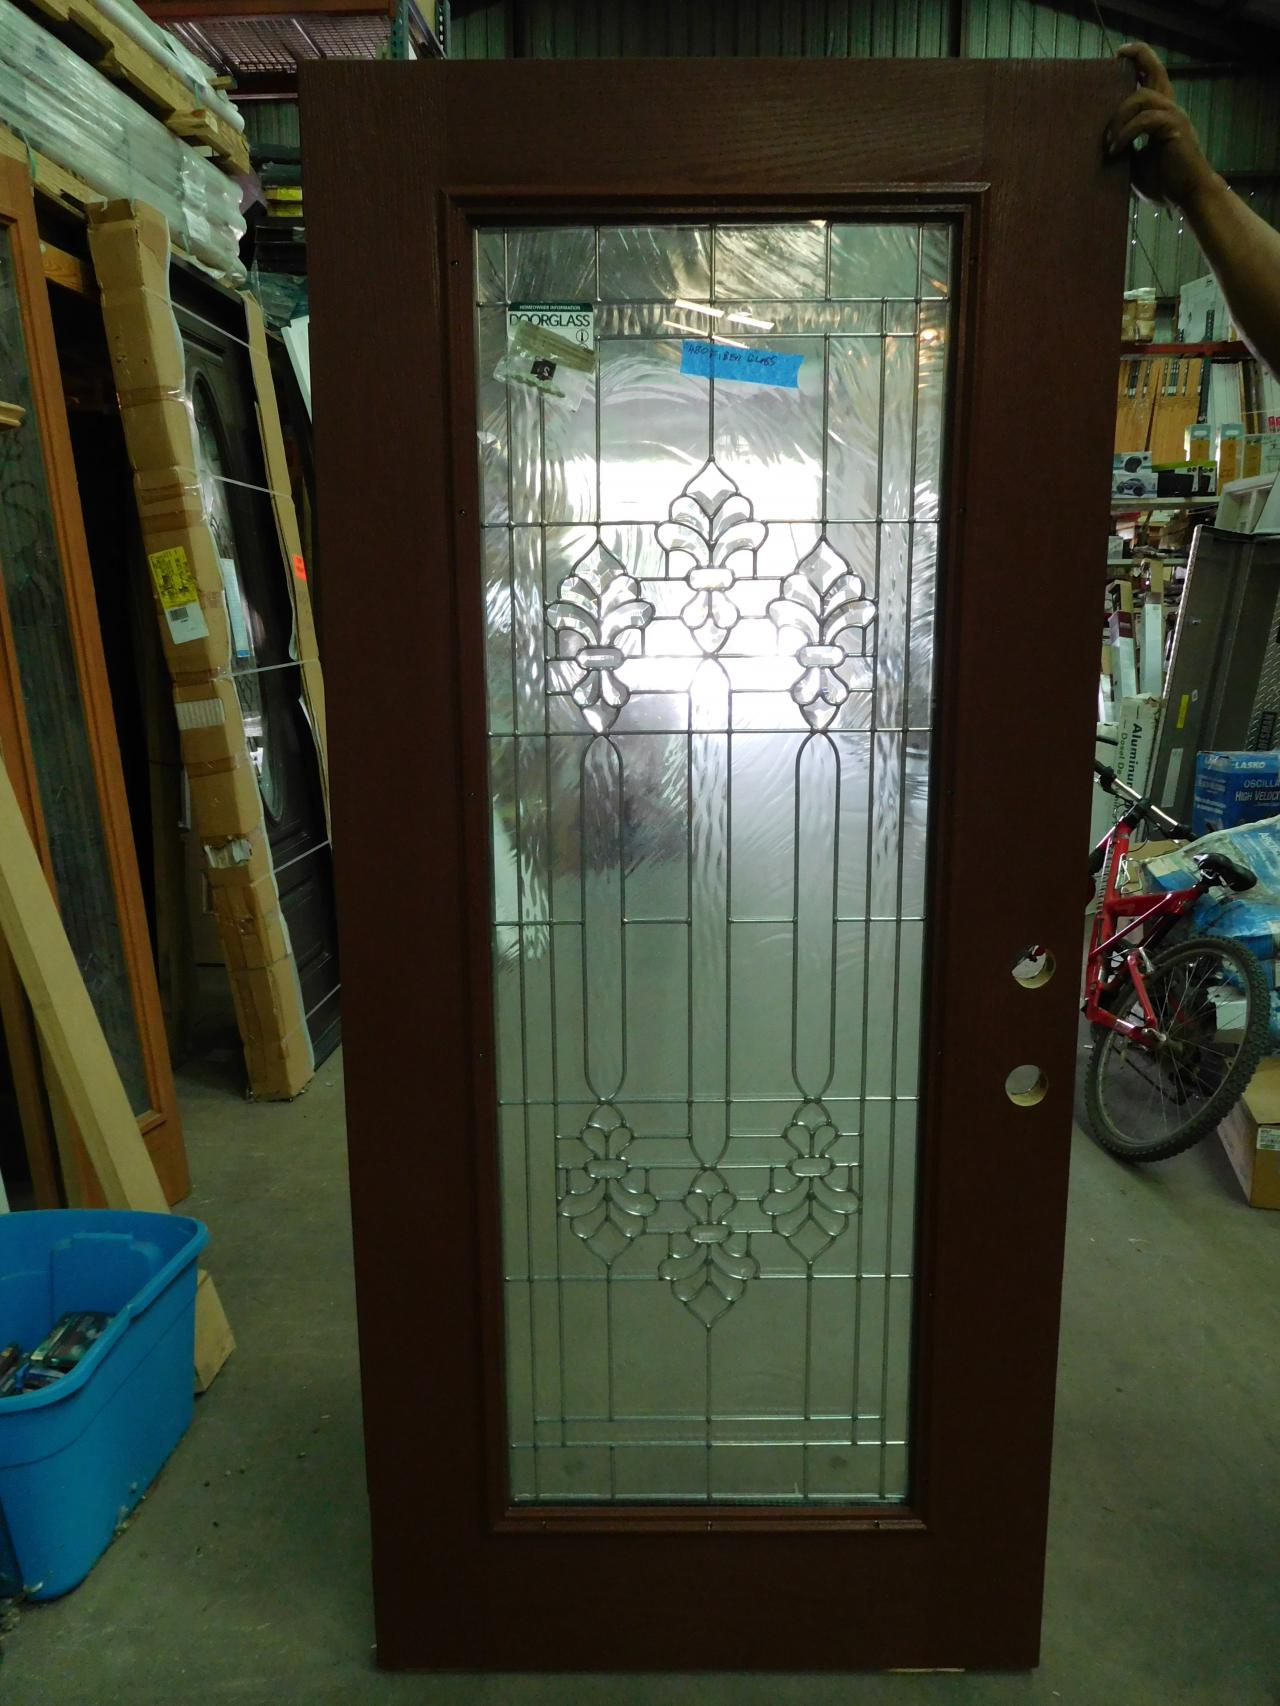 Home Improvement Outlet Has The Best Selection Of Exterior, Interior Doors.  They Range From Simple To Elegant We Have You Covered At Unbeatable Prices!!